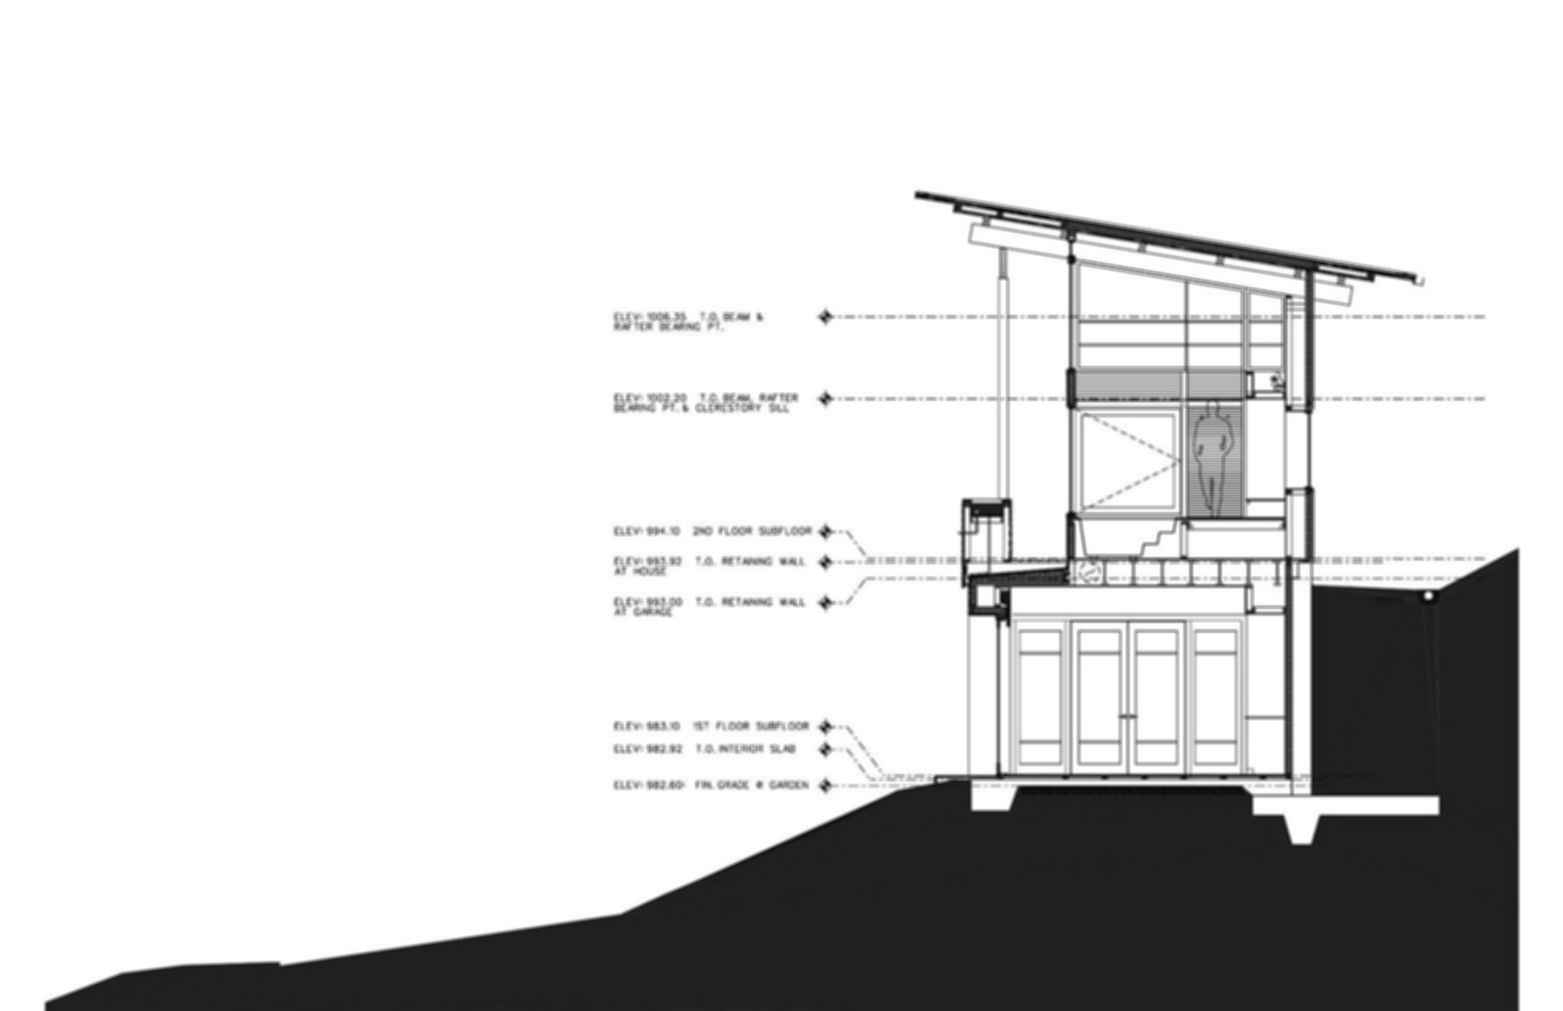 Greenland Road Residence - Concept Design